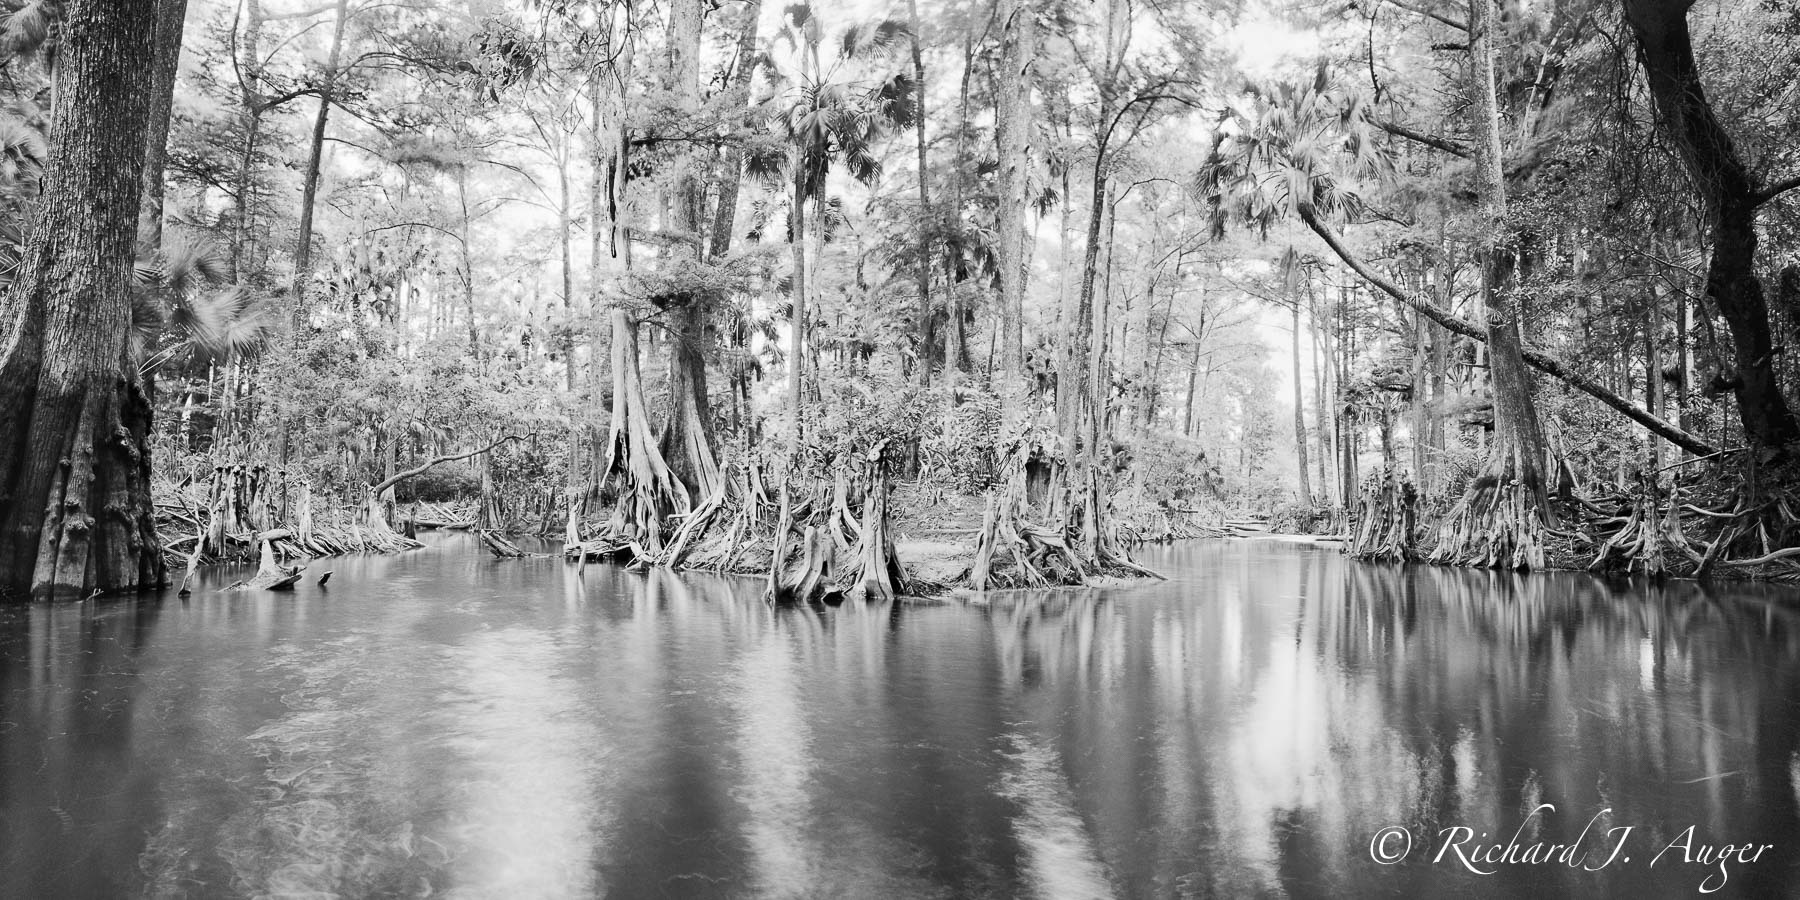 Loxahatchee river, Florida, Swamp, Cypress, Monochrome, Black and White, Photograph, River